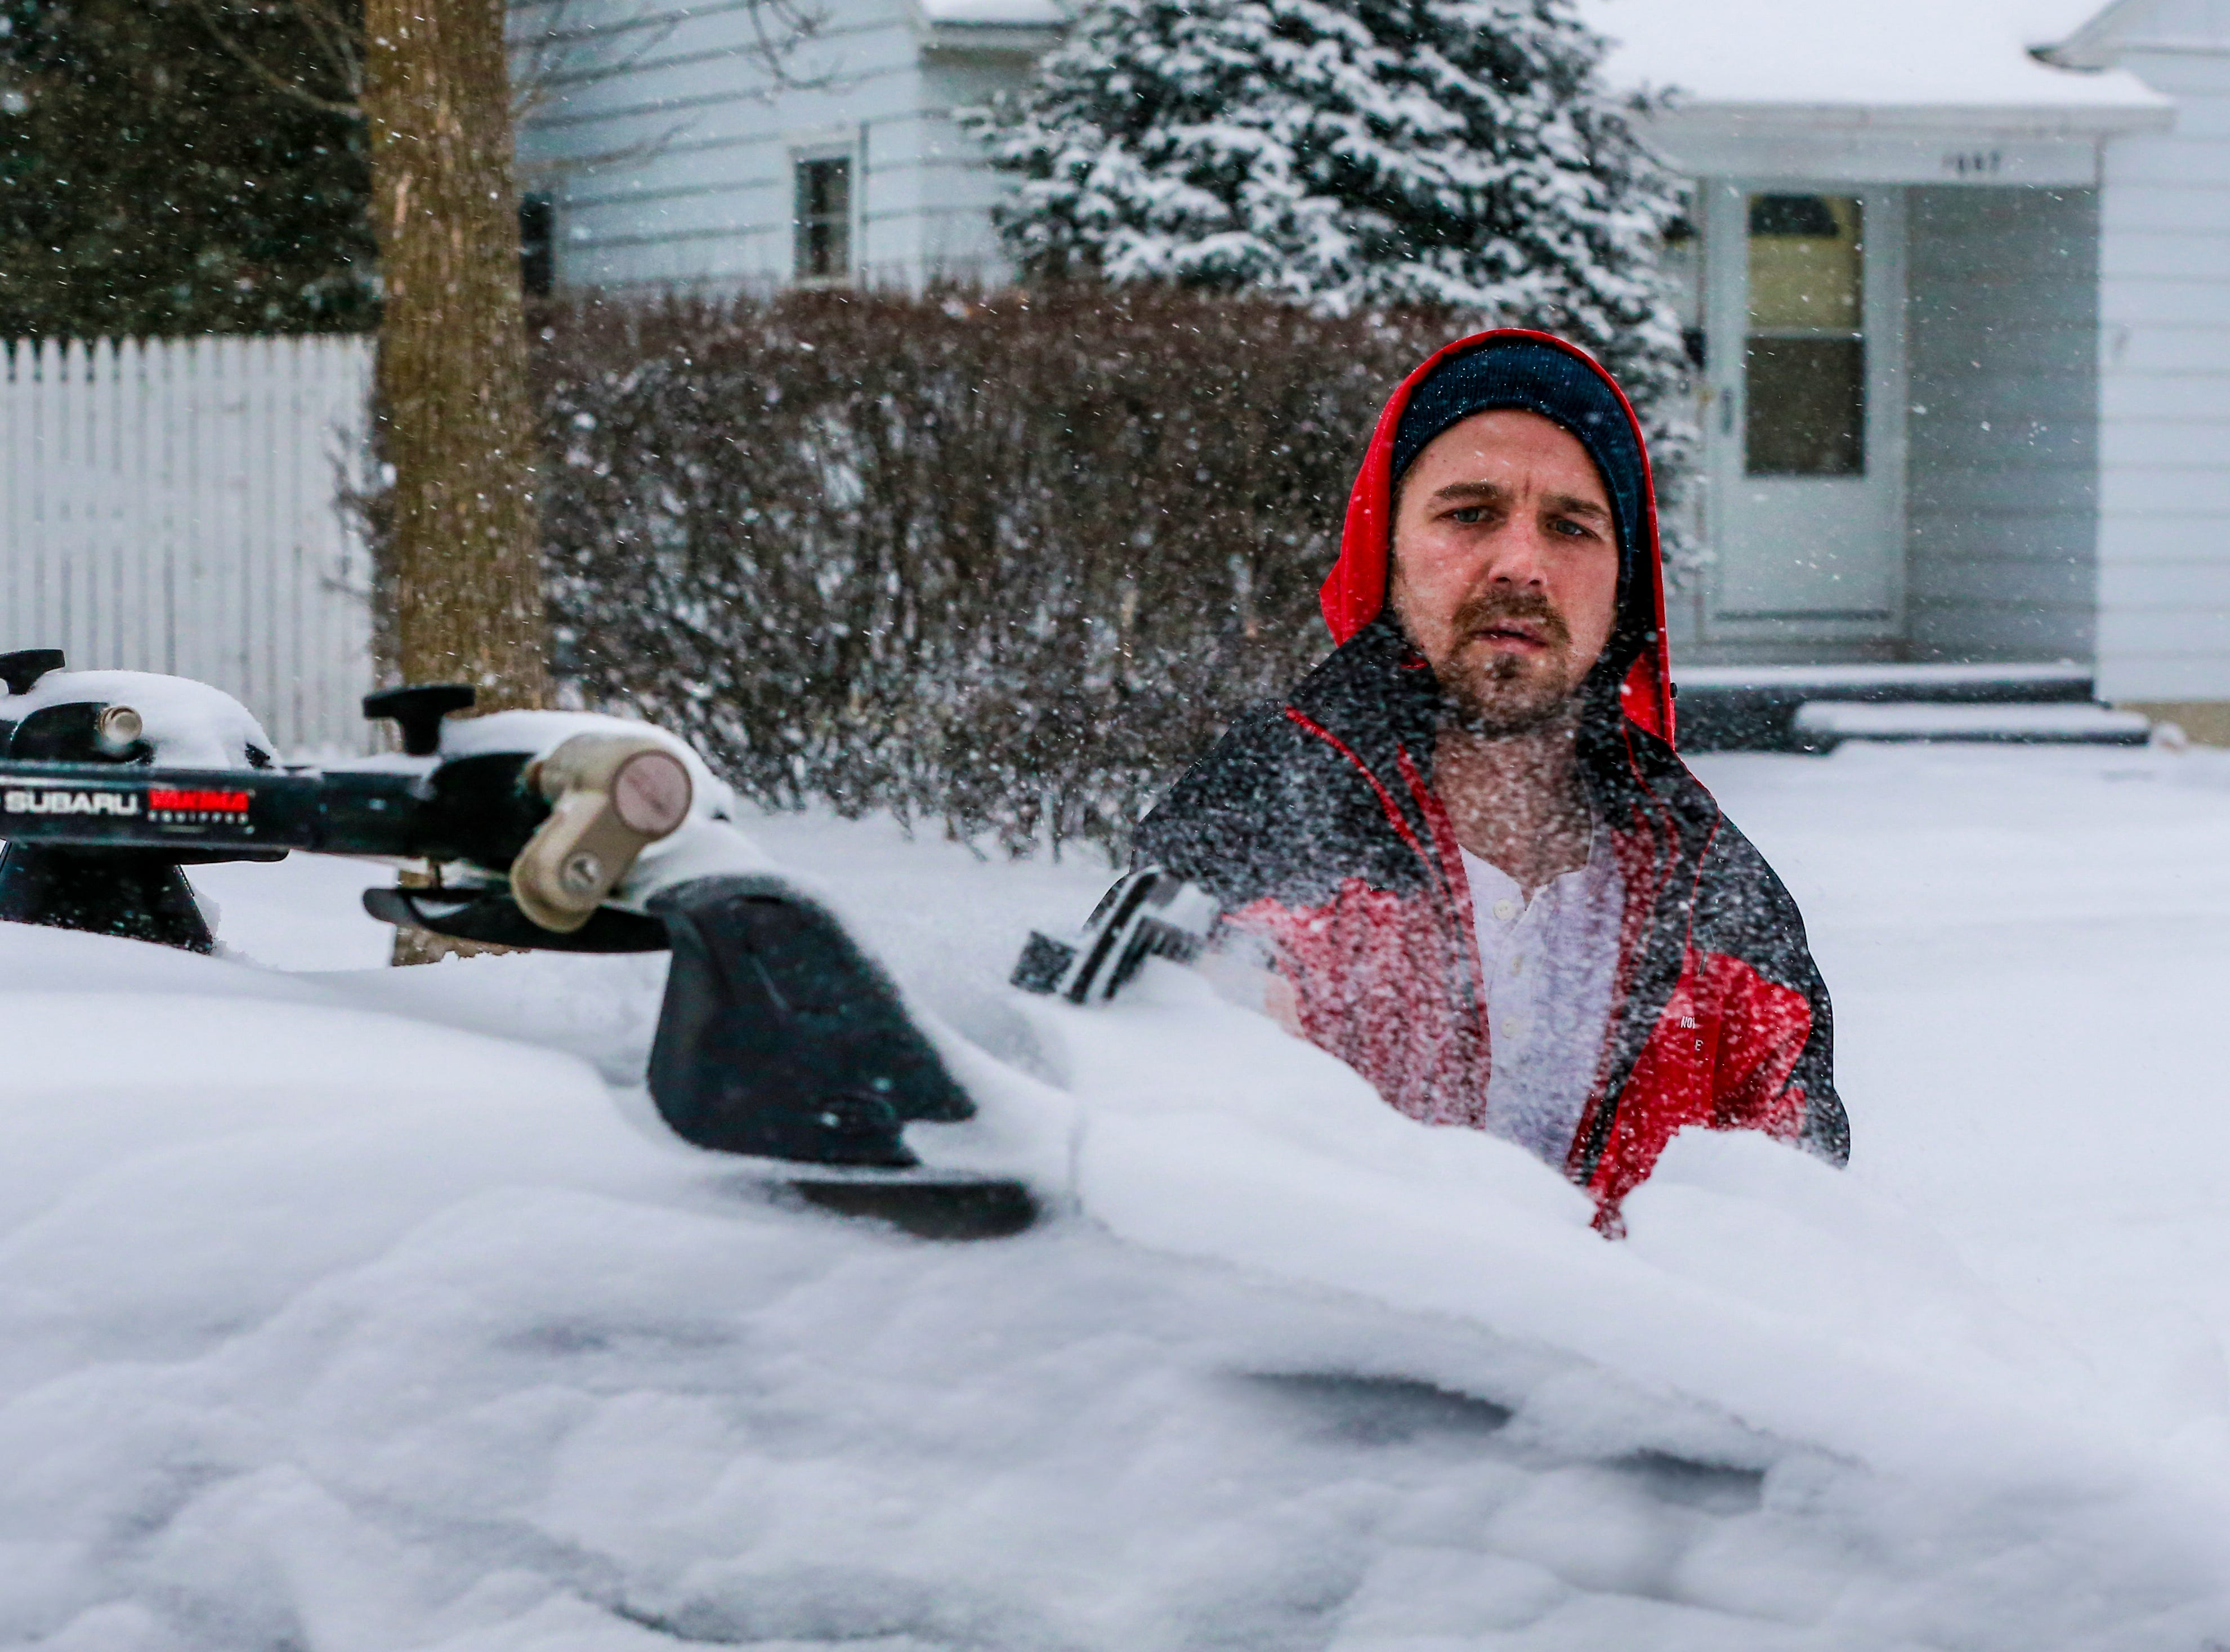 Cody Harmon brushes off snow that covered his vehicle after a snowstorm Monday, Jan. 28, 2019, in Wausau, Wis.